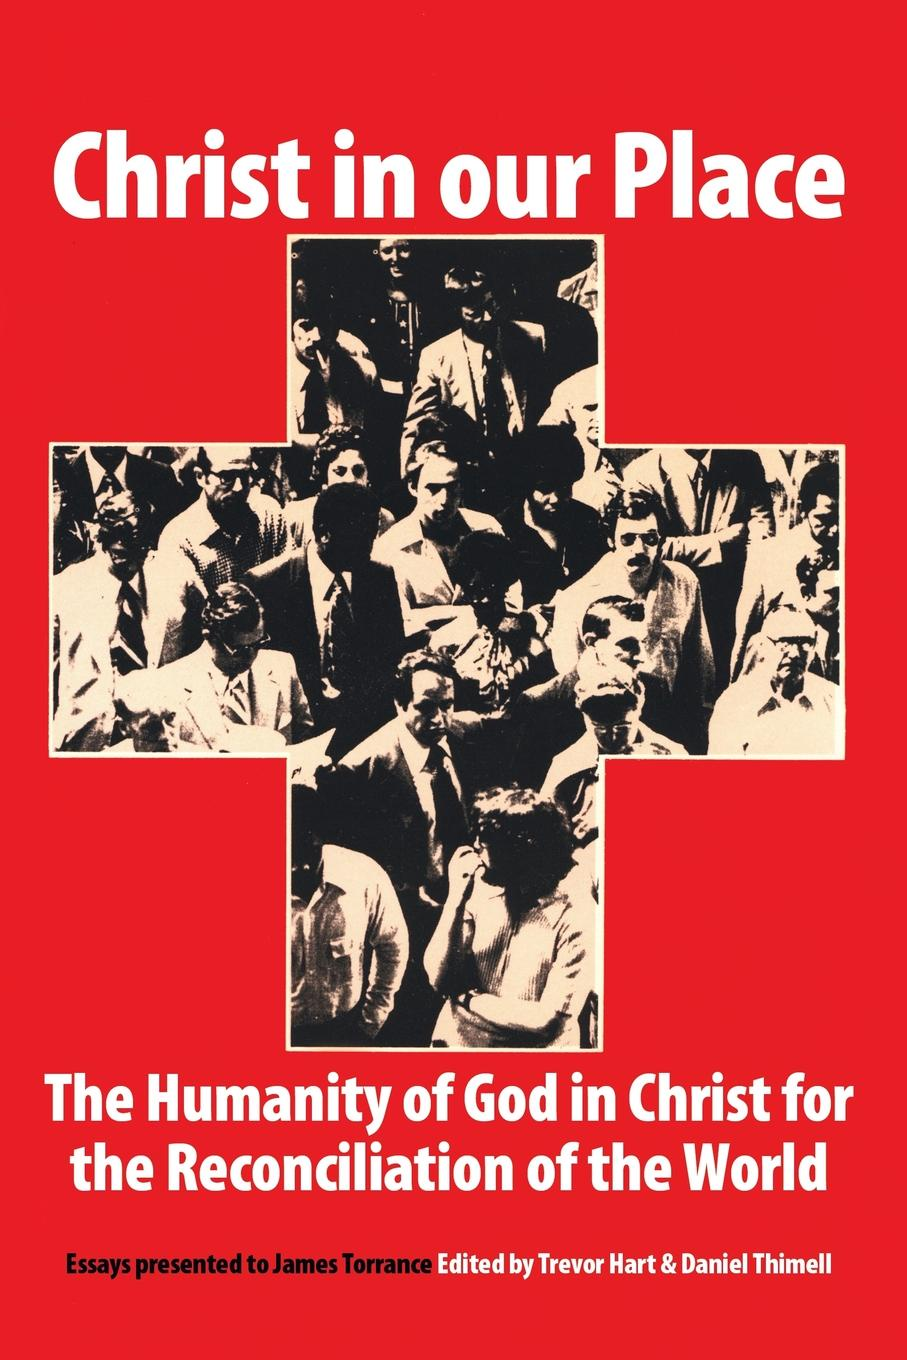 Christ in Our Place. The Humanity of God in Christ for the Reconciliation of the World: Essays Presented to James Torrance